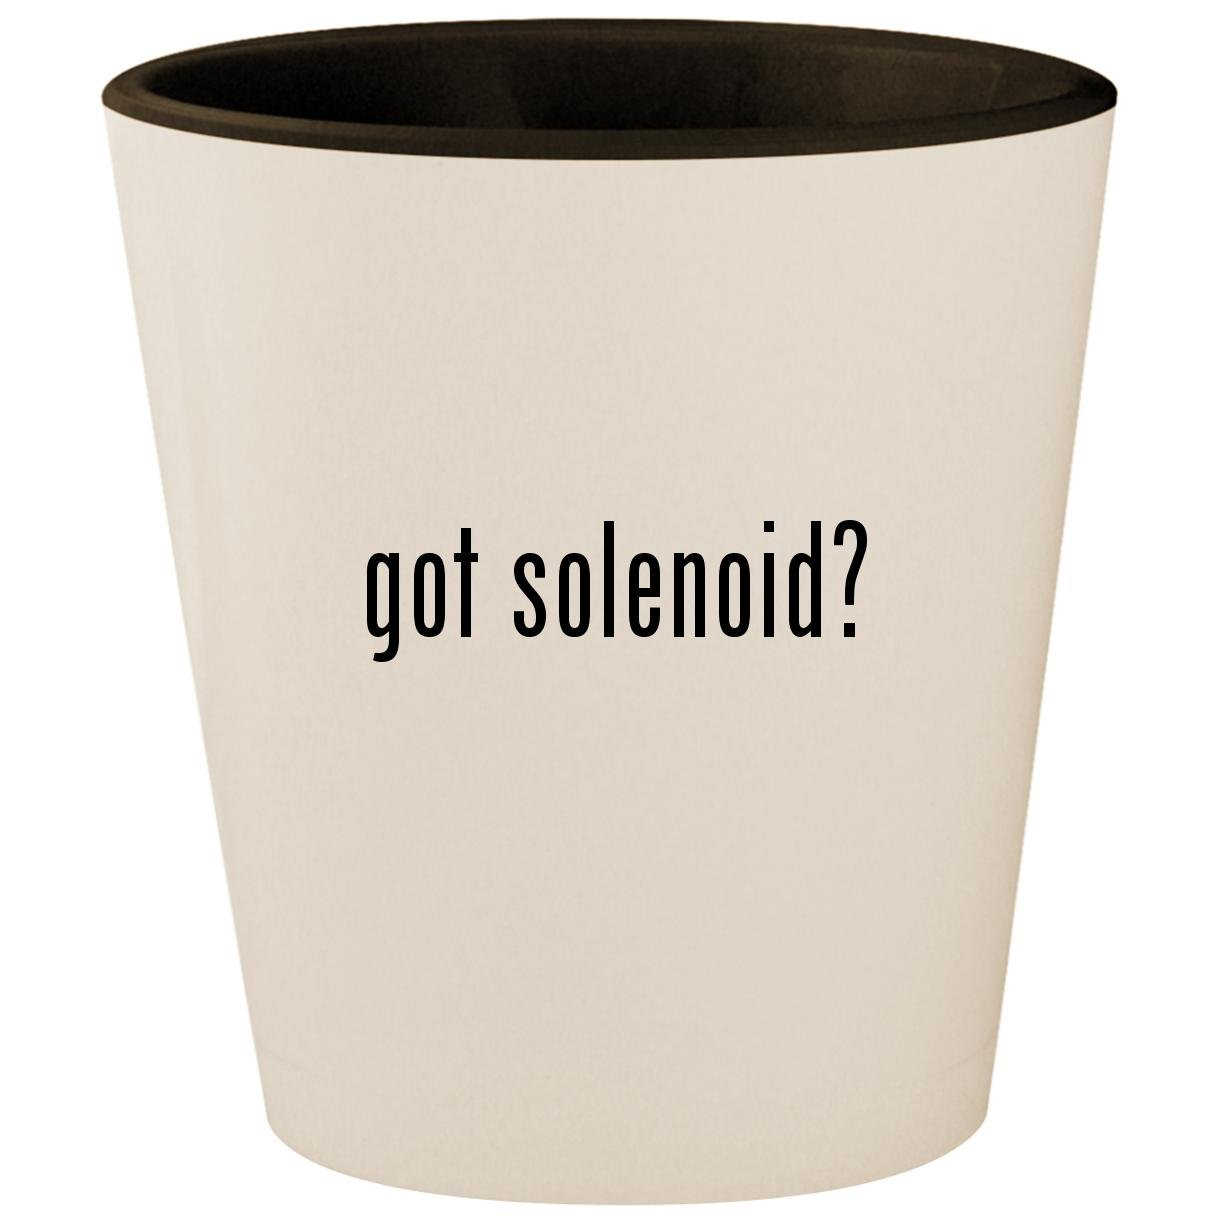 got solenoid? - White Outer & Black Inner Ceramic 1.5oz Shot Glass